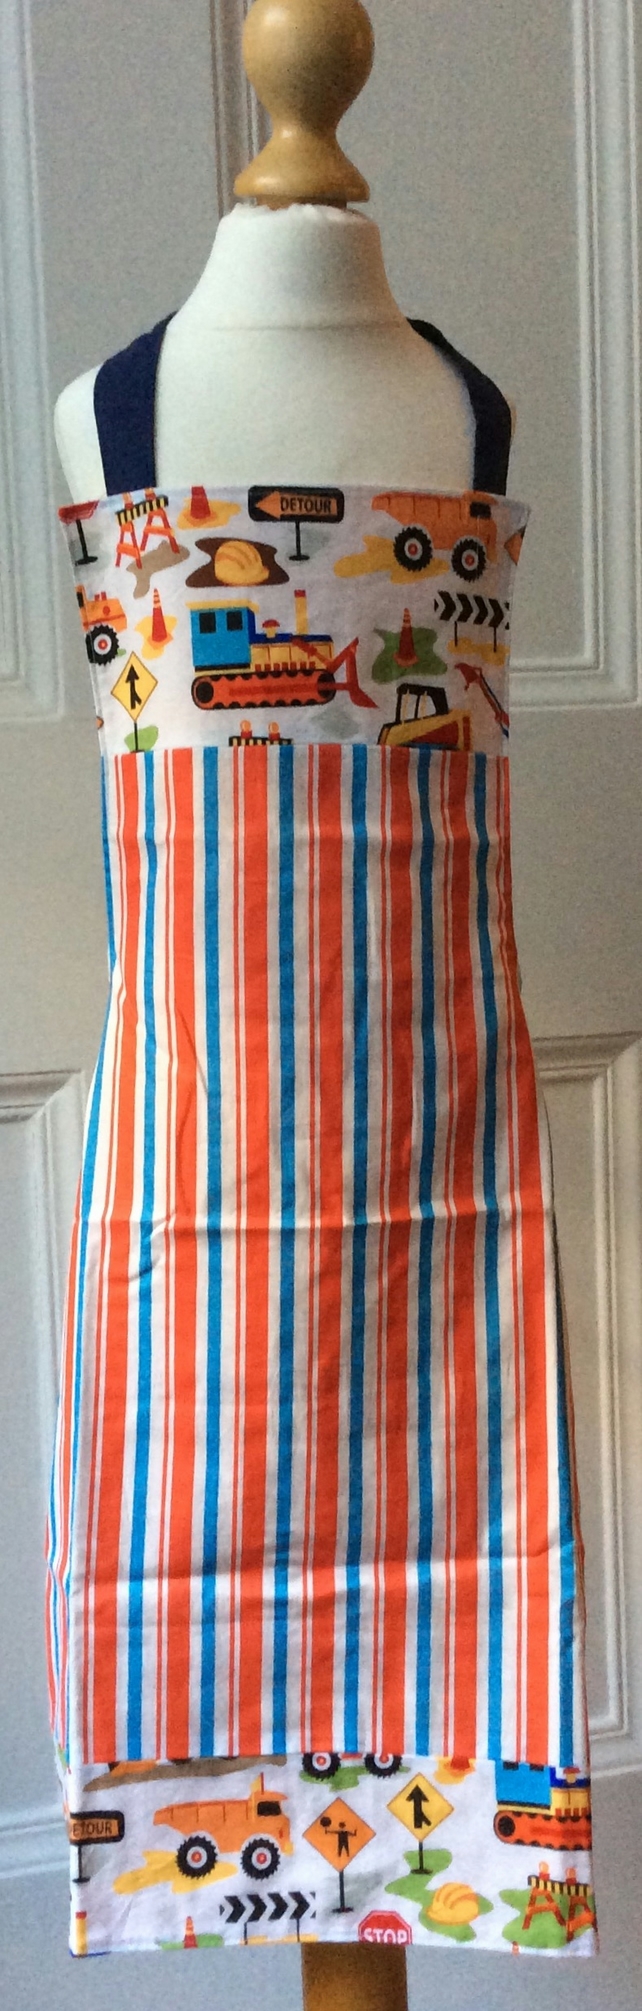 Child's Apron - Construction & Stripes Age 3-5